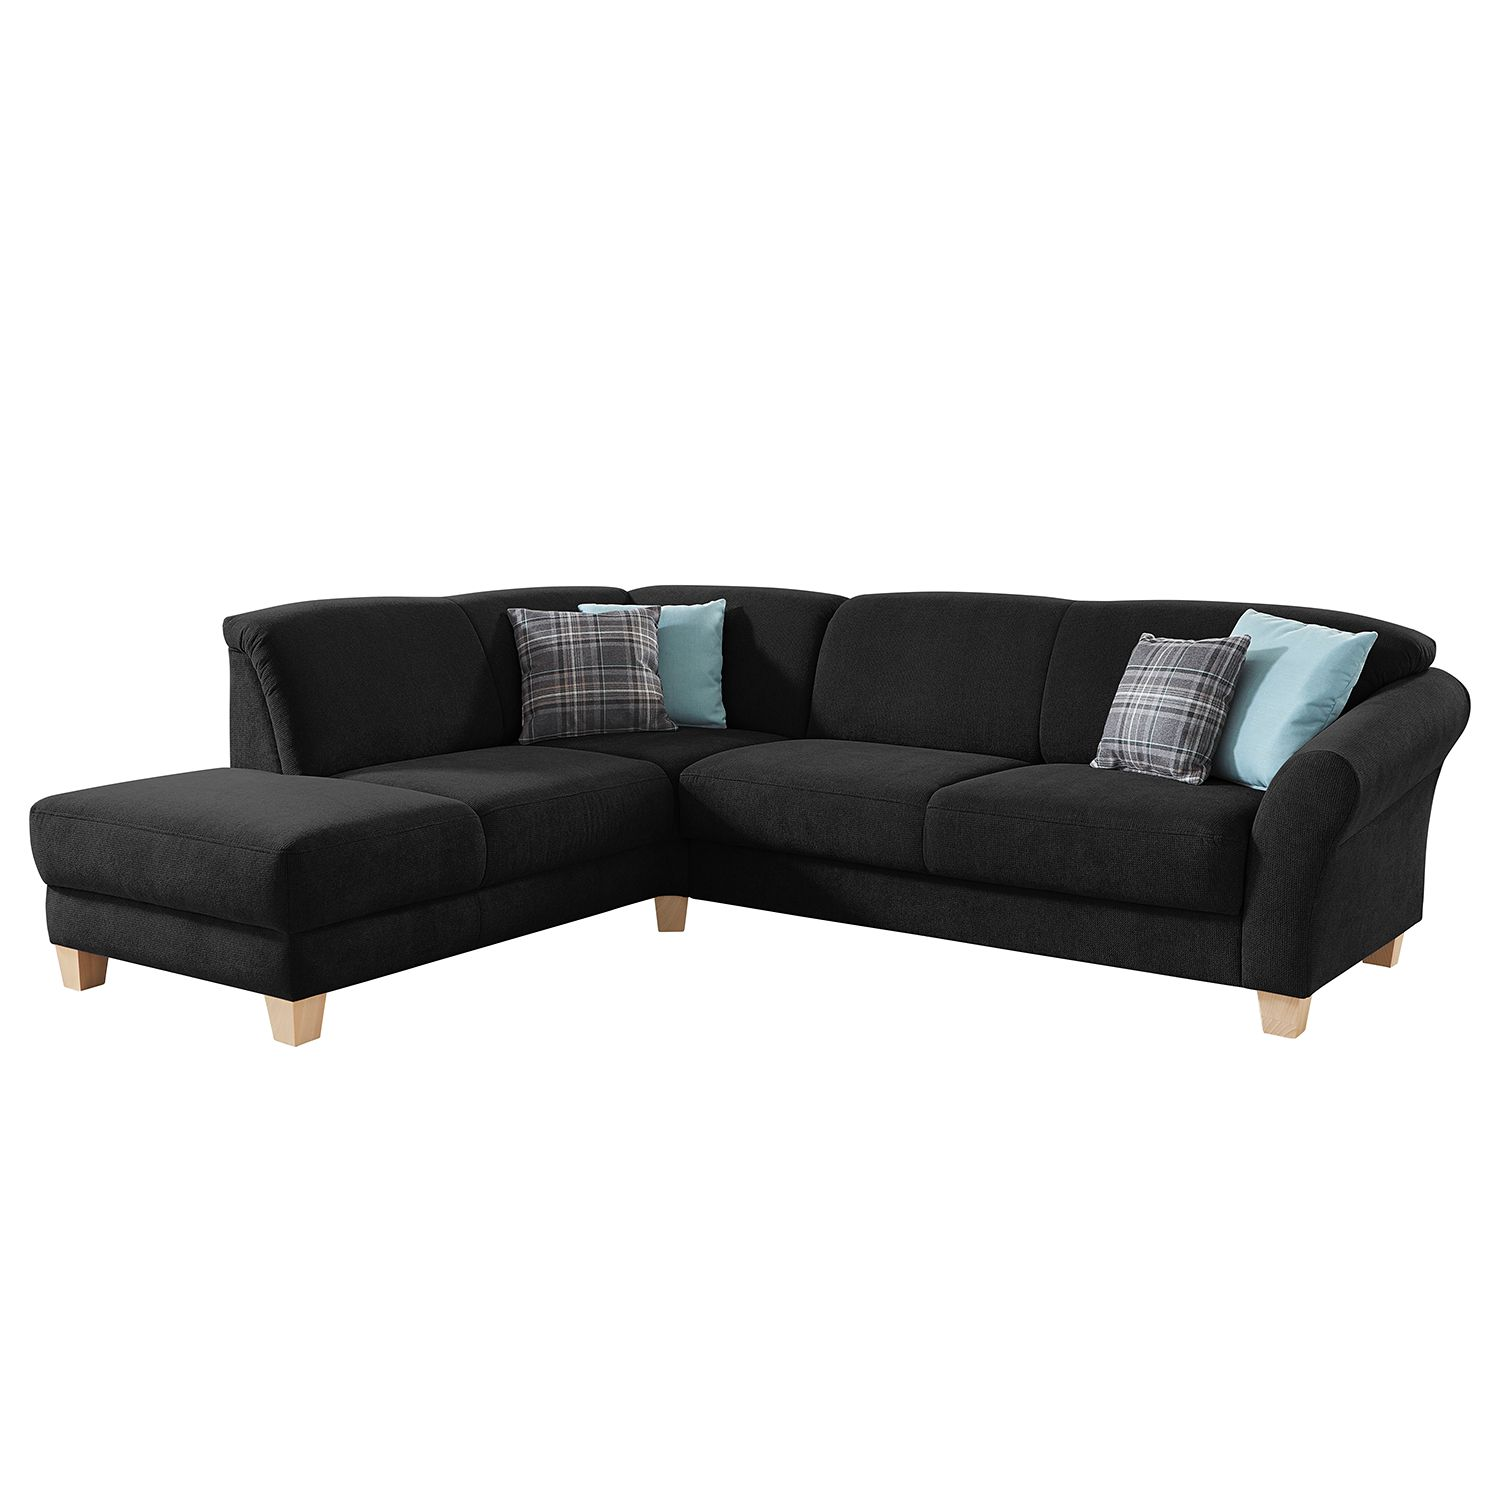 ecksofa mit sitztiefenverstellung. Black Bedroom Furniture Sets. Home Design Ideas